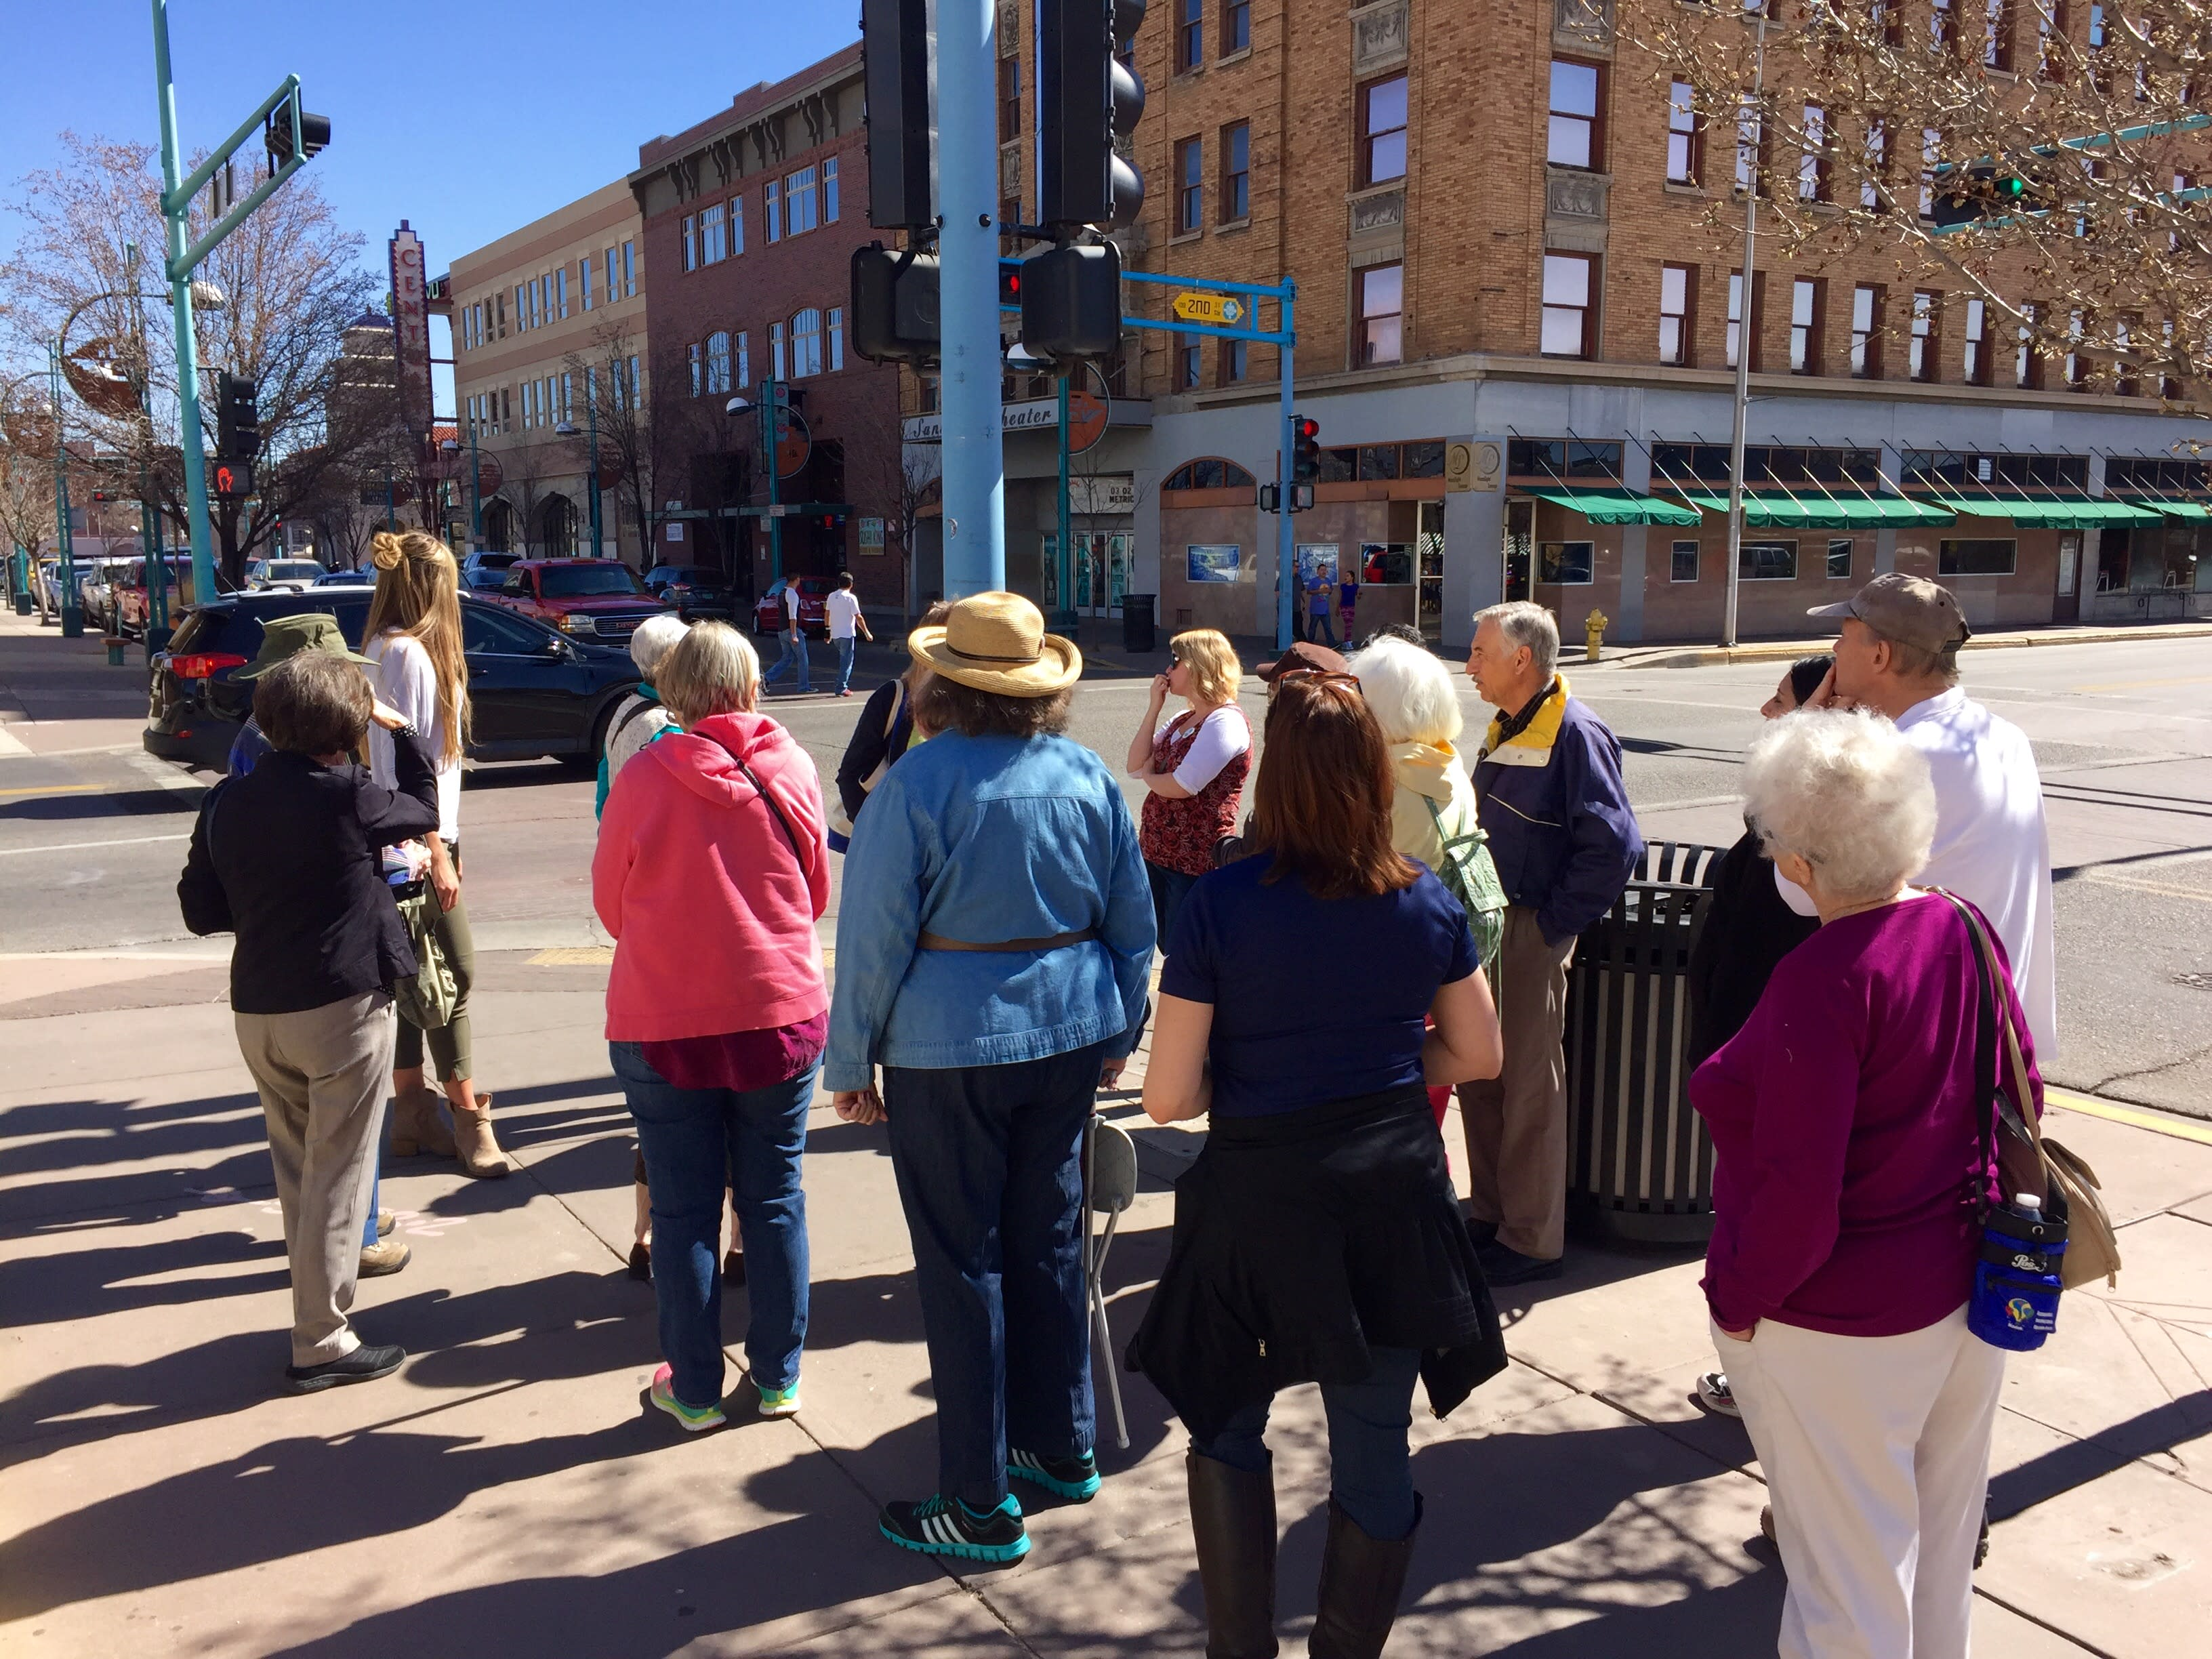 Albu-Quirky Weird Walk, tour in Downtown Albuquerque